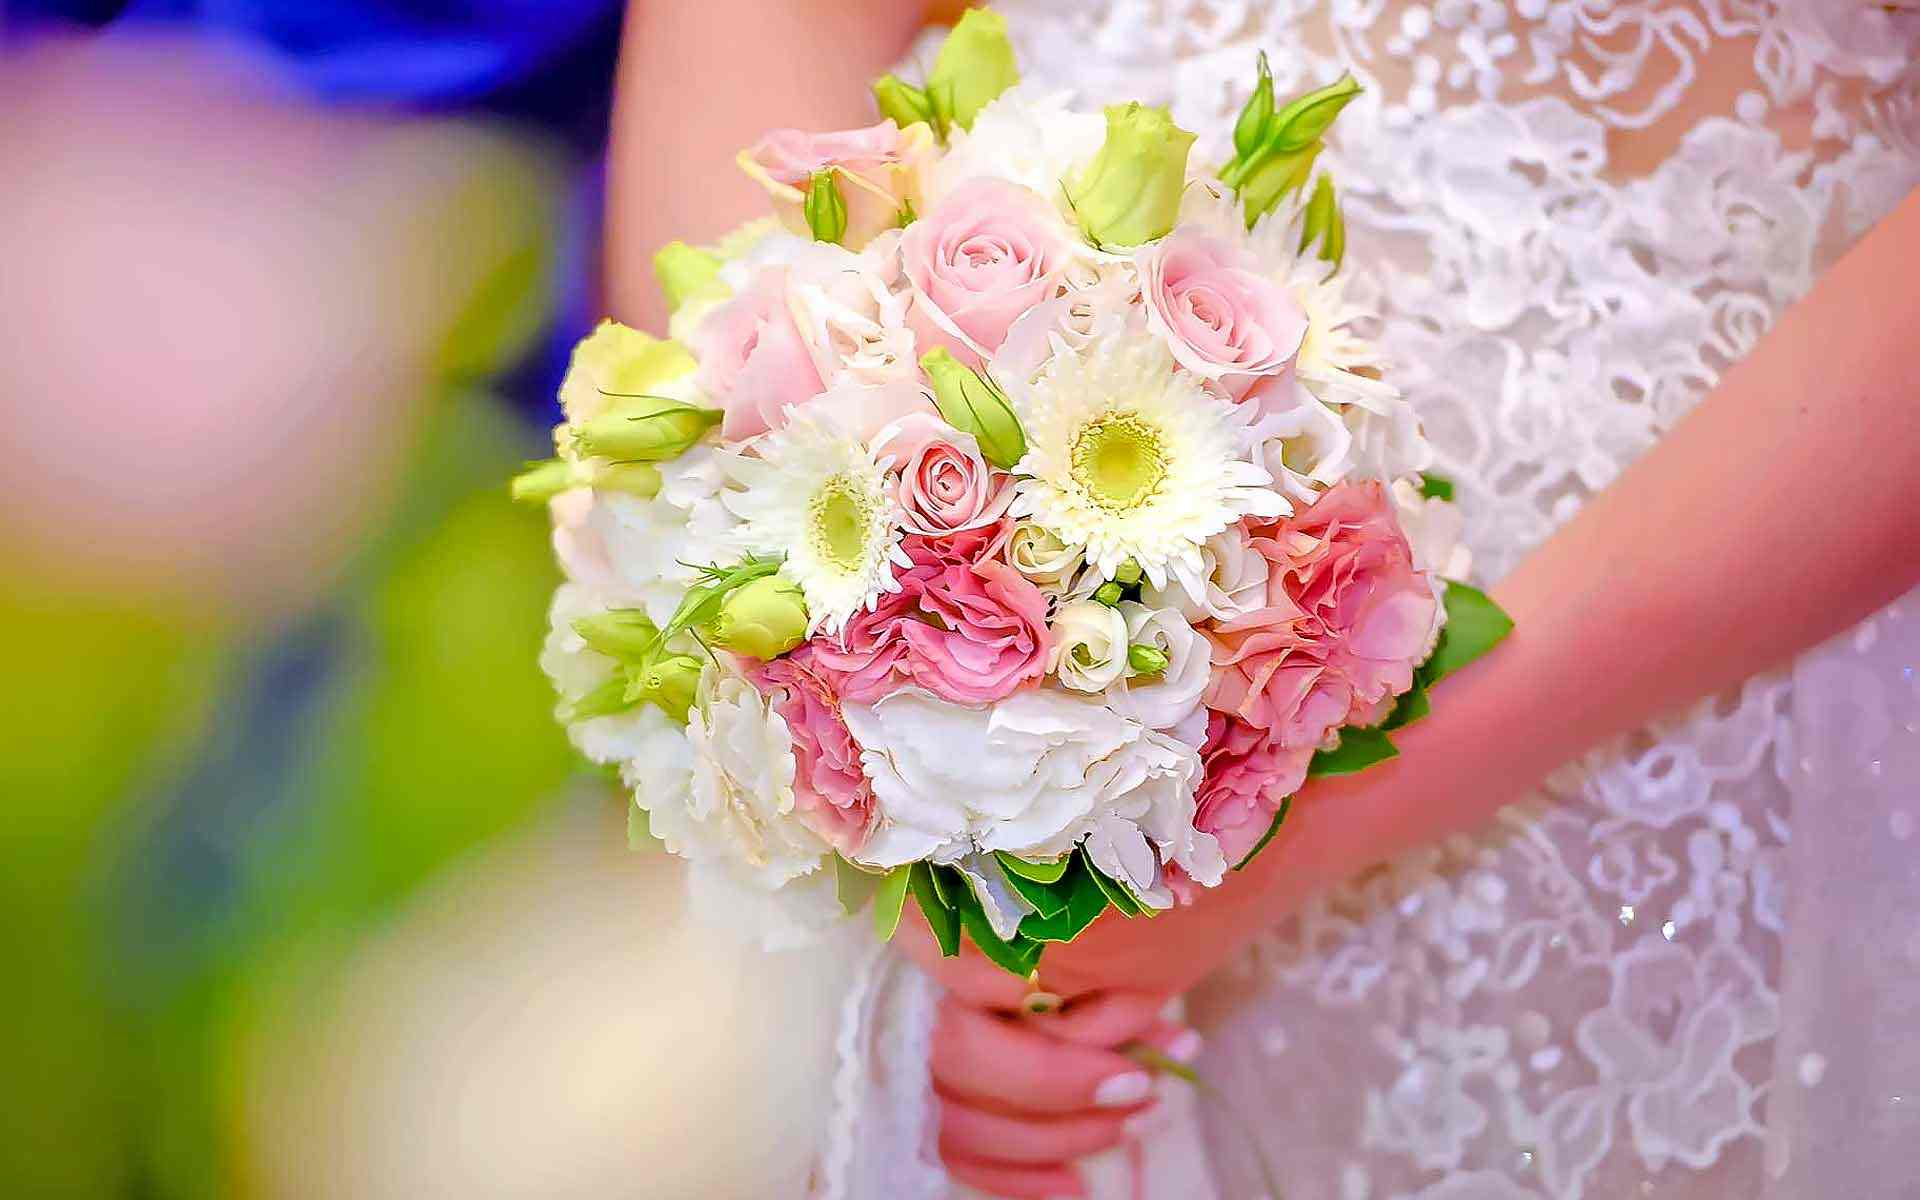 Vintage-Wedding-Bouquet-by-Diamond-Events-Wedding-Event-planning-services